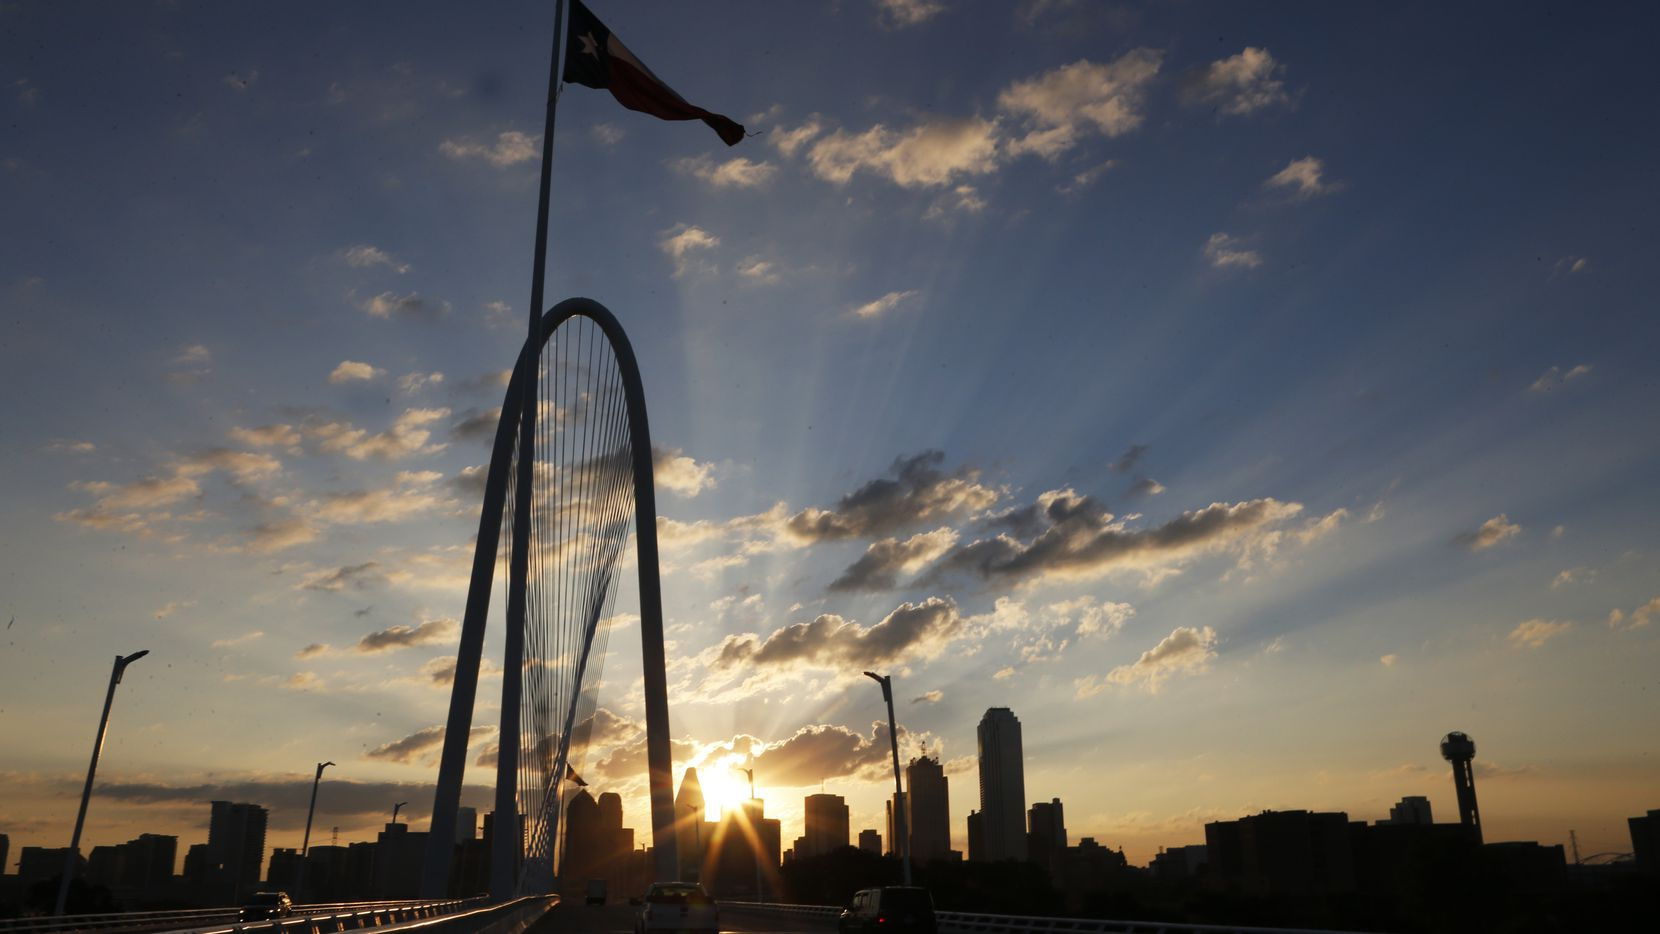 The sun emerges over the Dallas skyline with the Margaret Hunt Hill Bridge  in the foreground on Aug. 12, 2014, in Dallas.